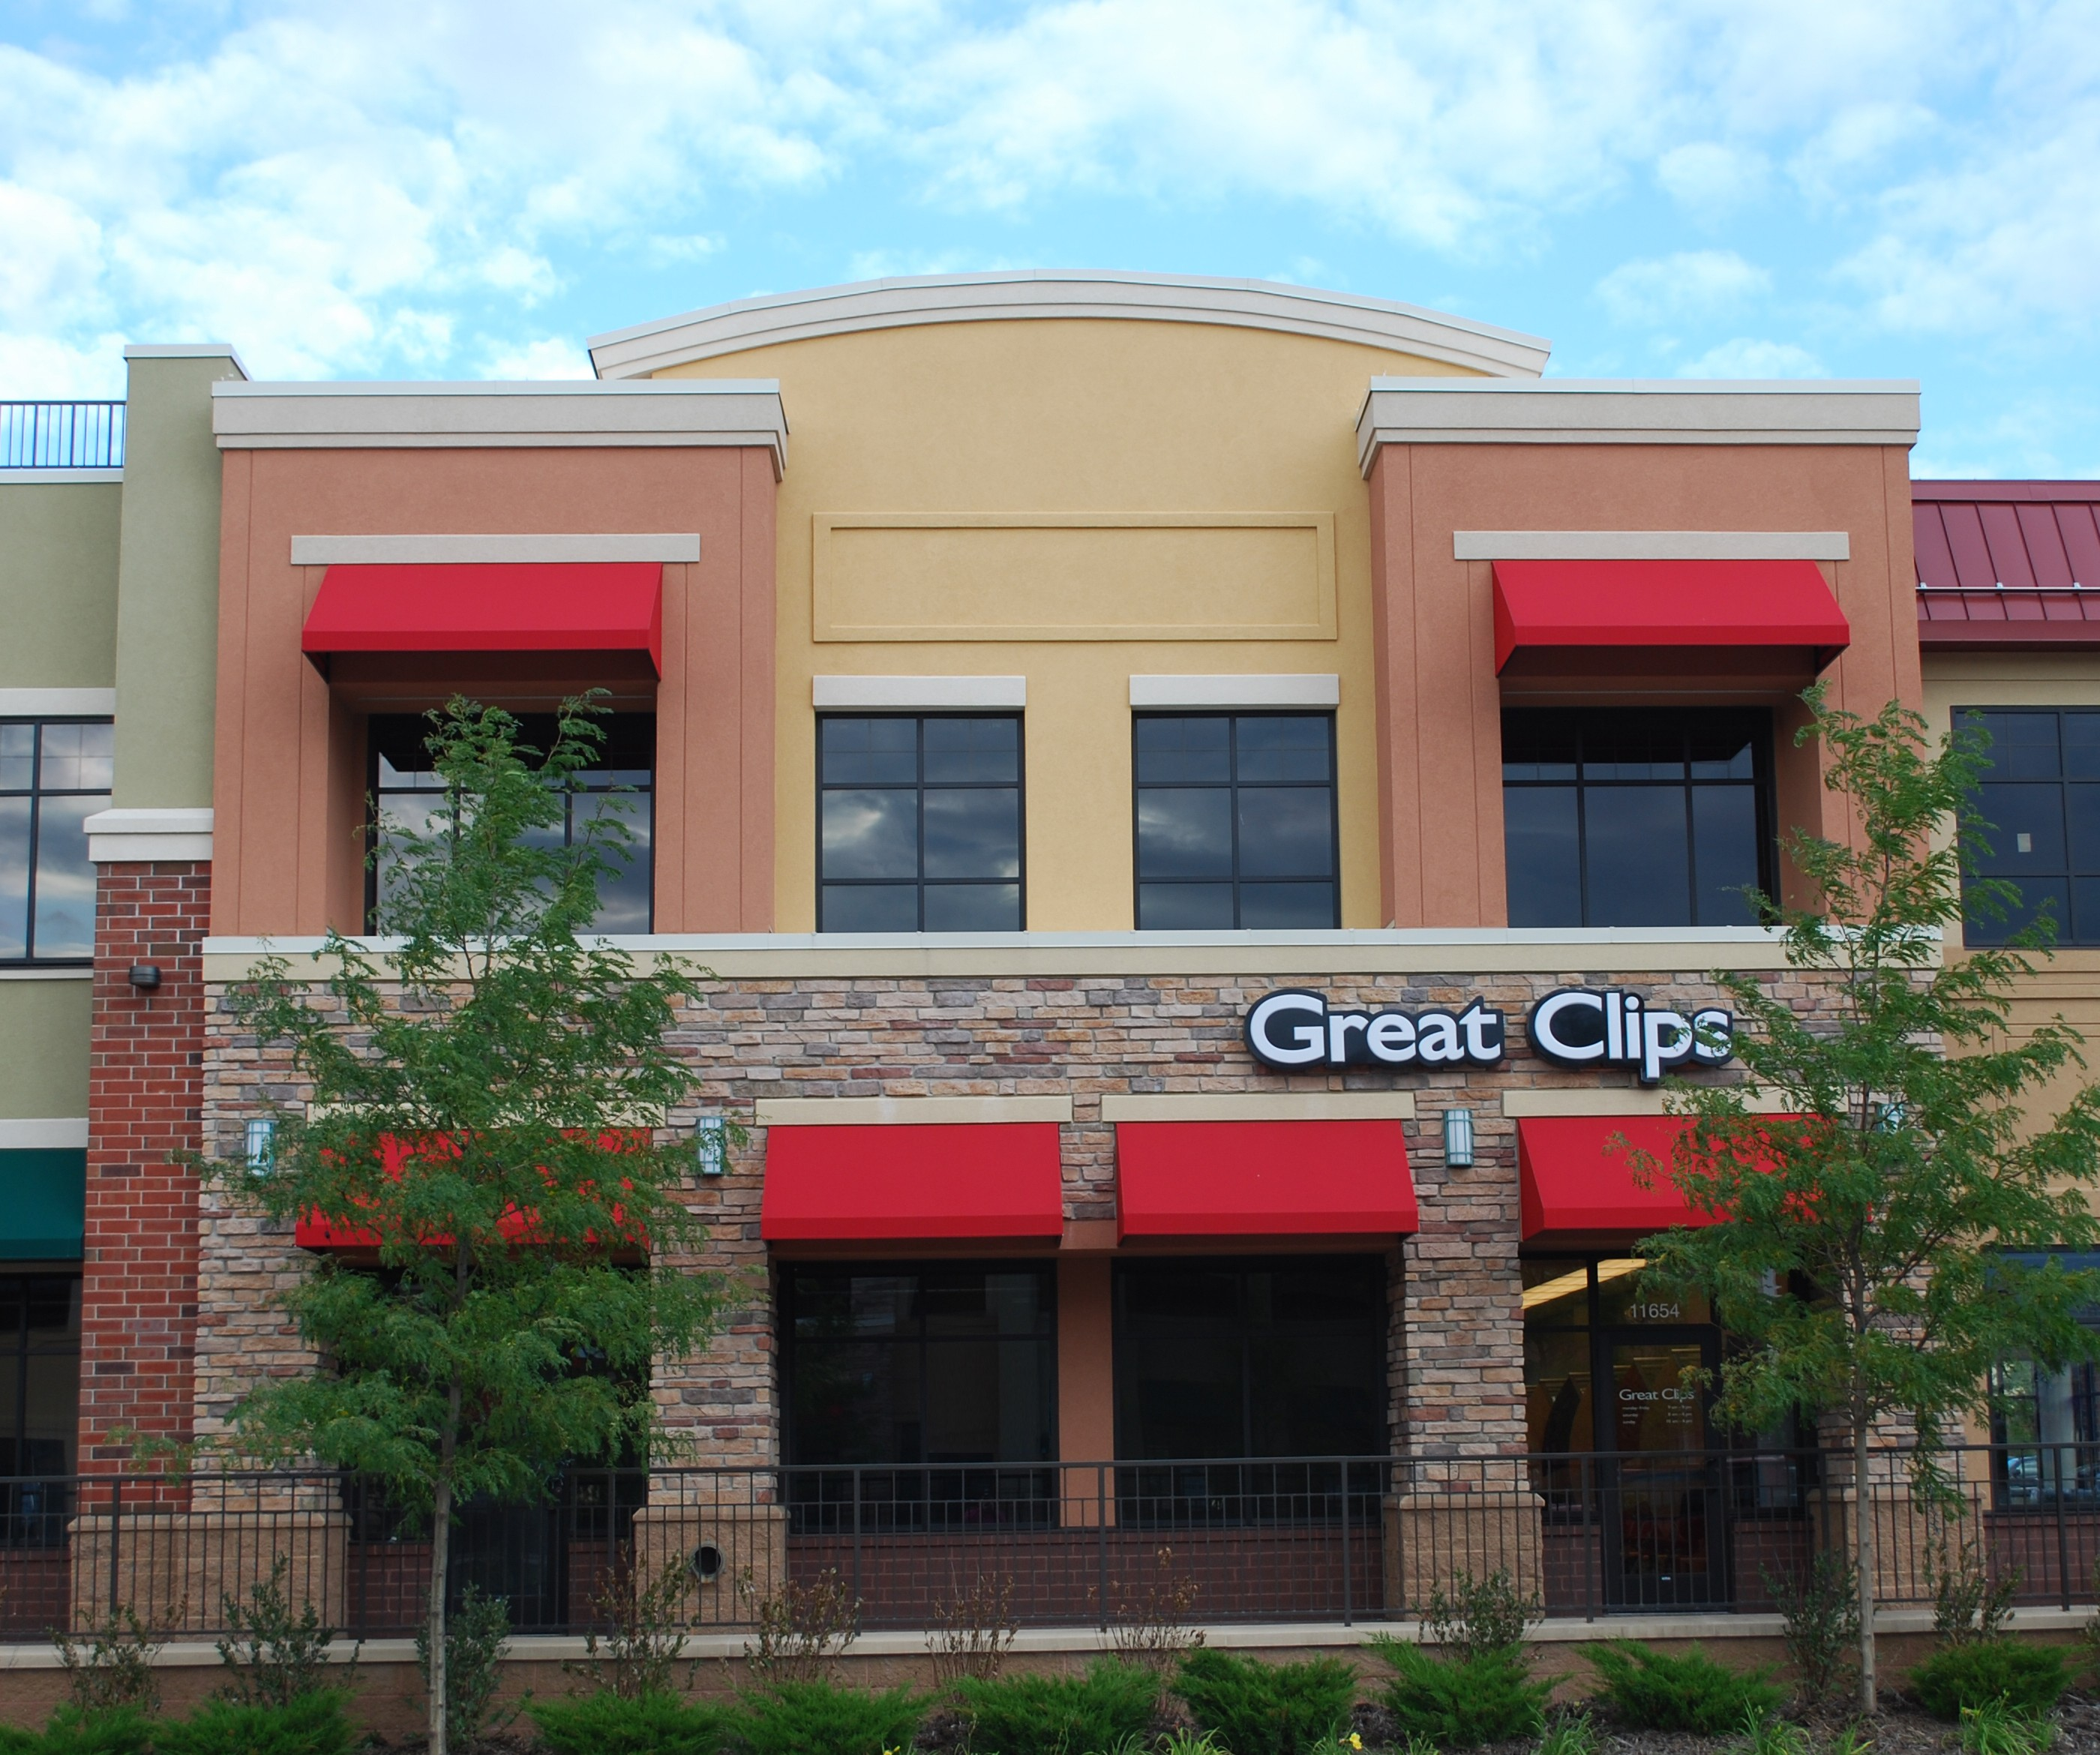 Great Clips Franchise Well Groomed For The New Economy